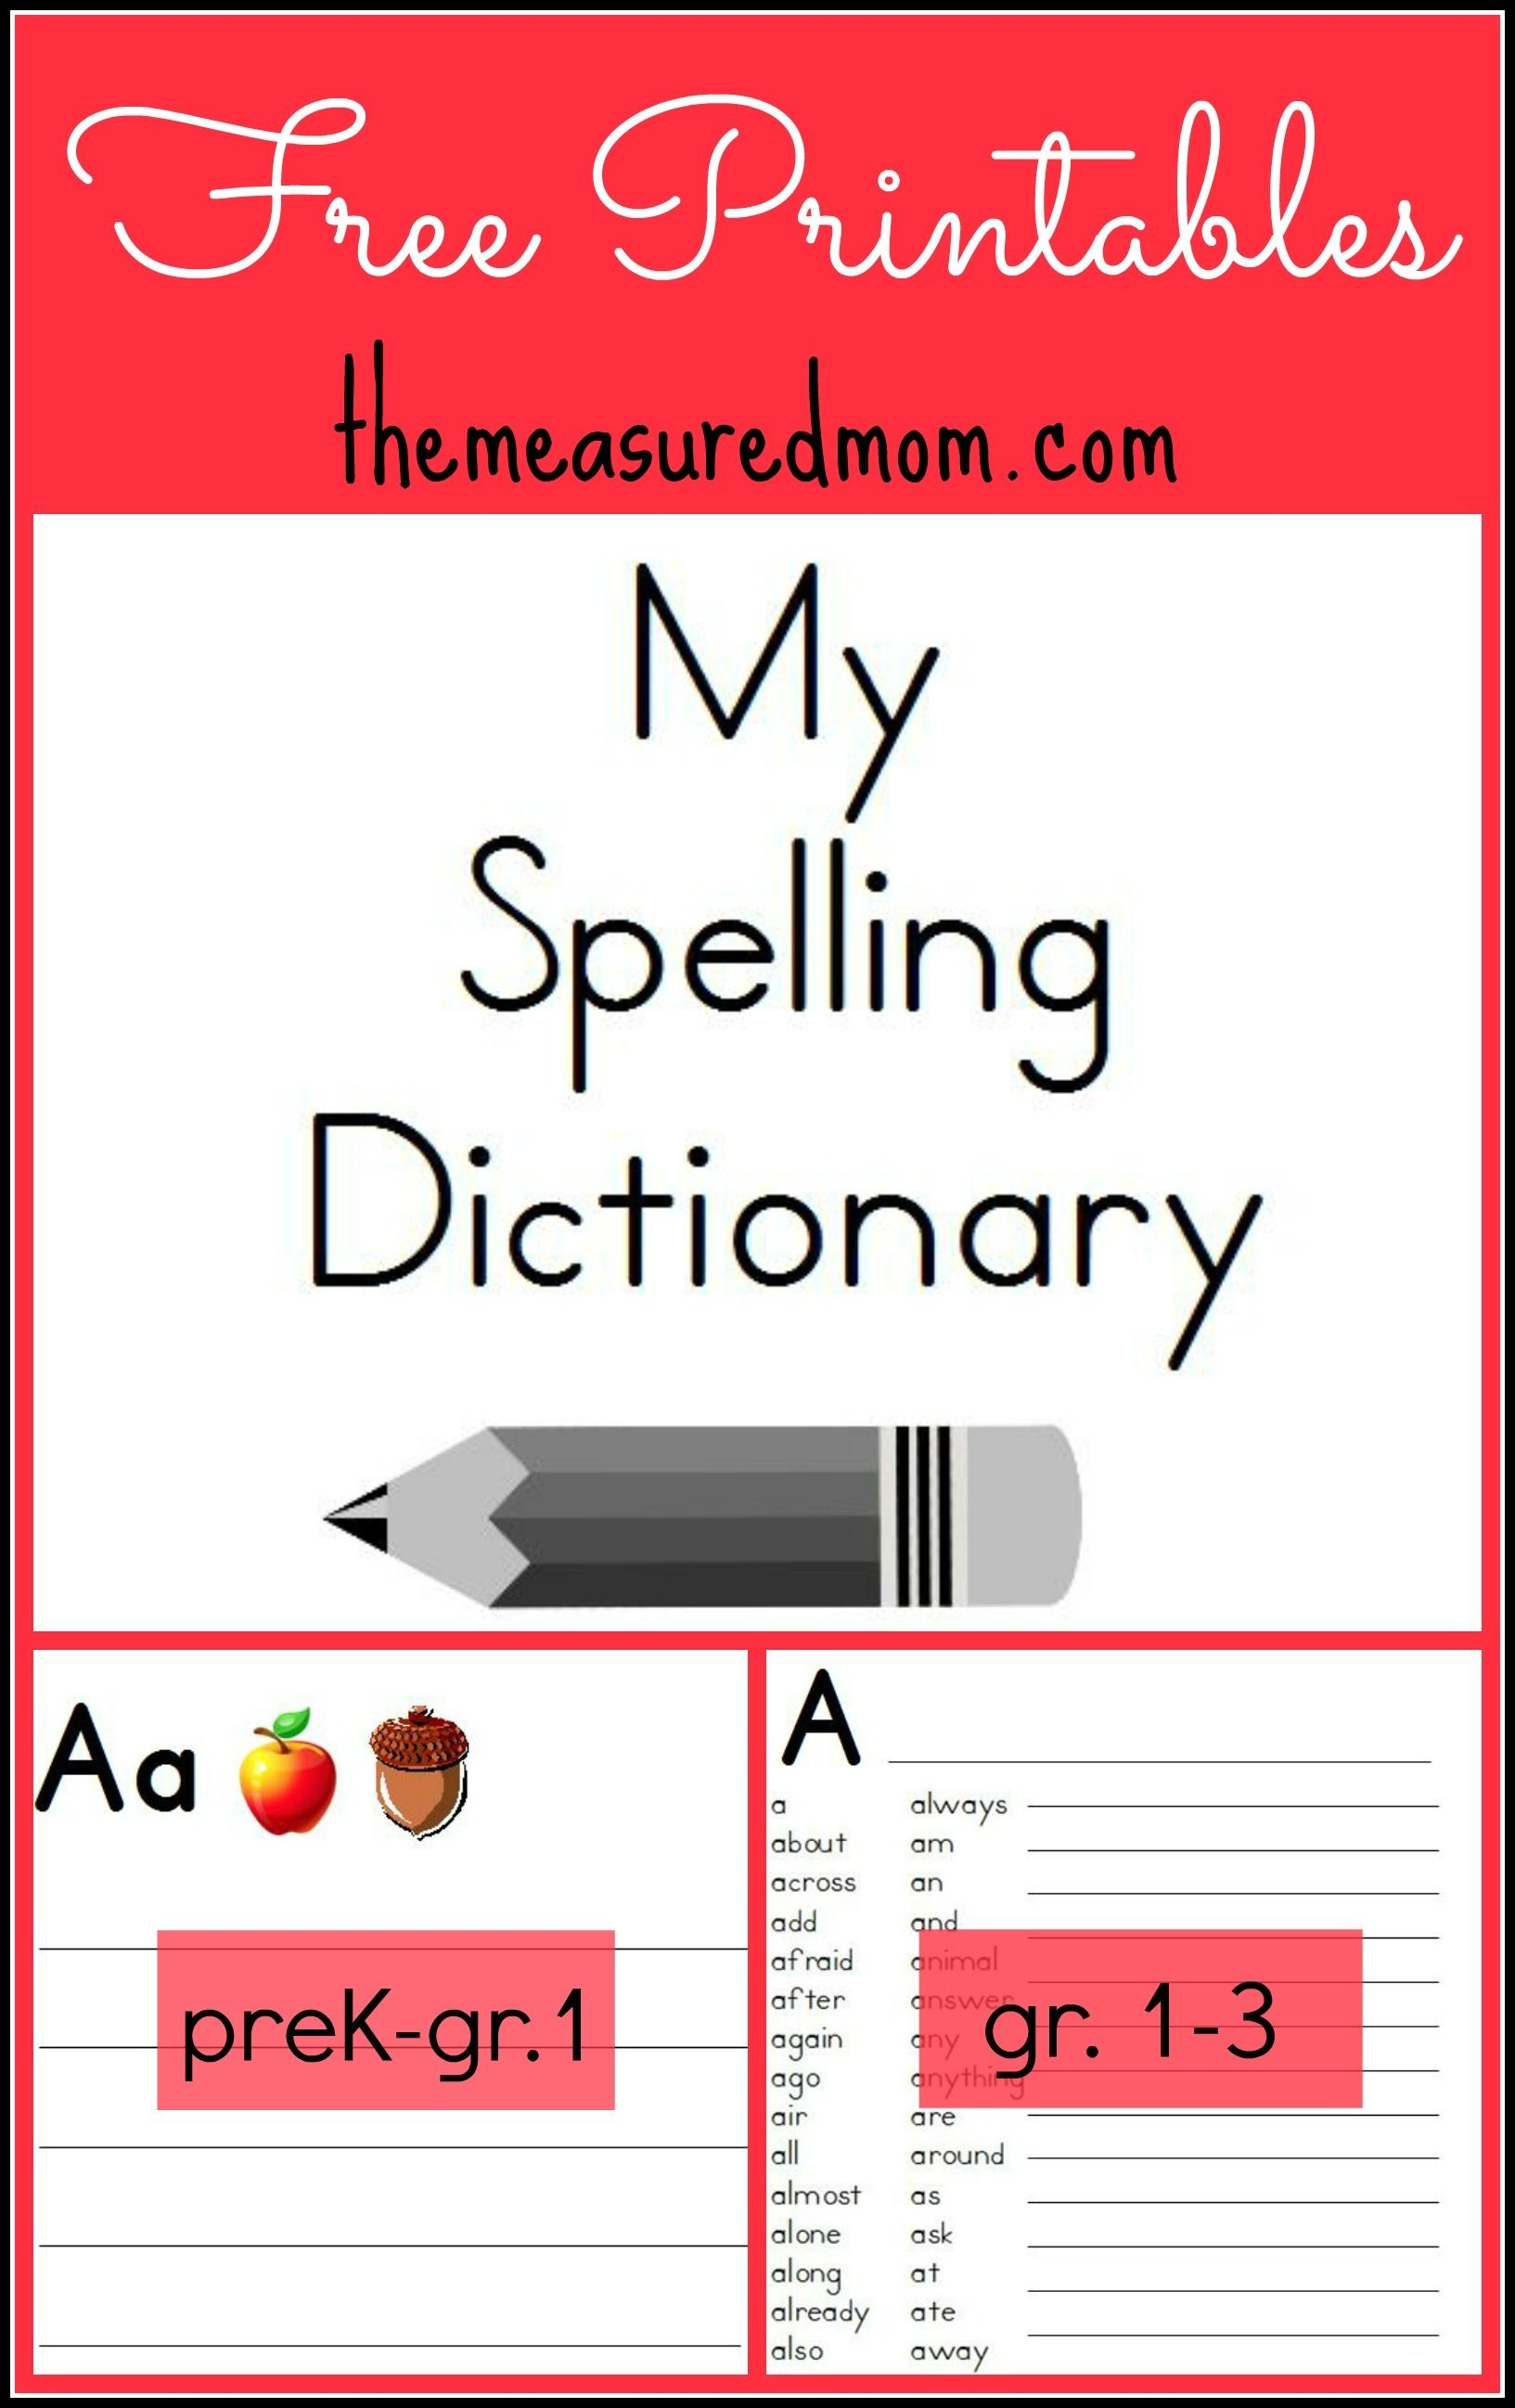 Printable Spelling Dictionary For Kids   For My Students   Escuela - My Spelling Dictionary Printable Free